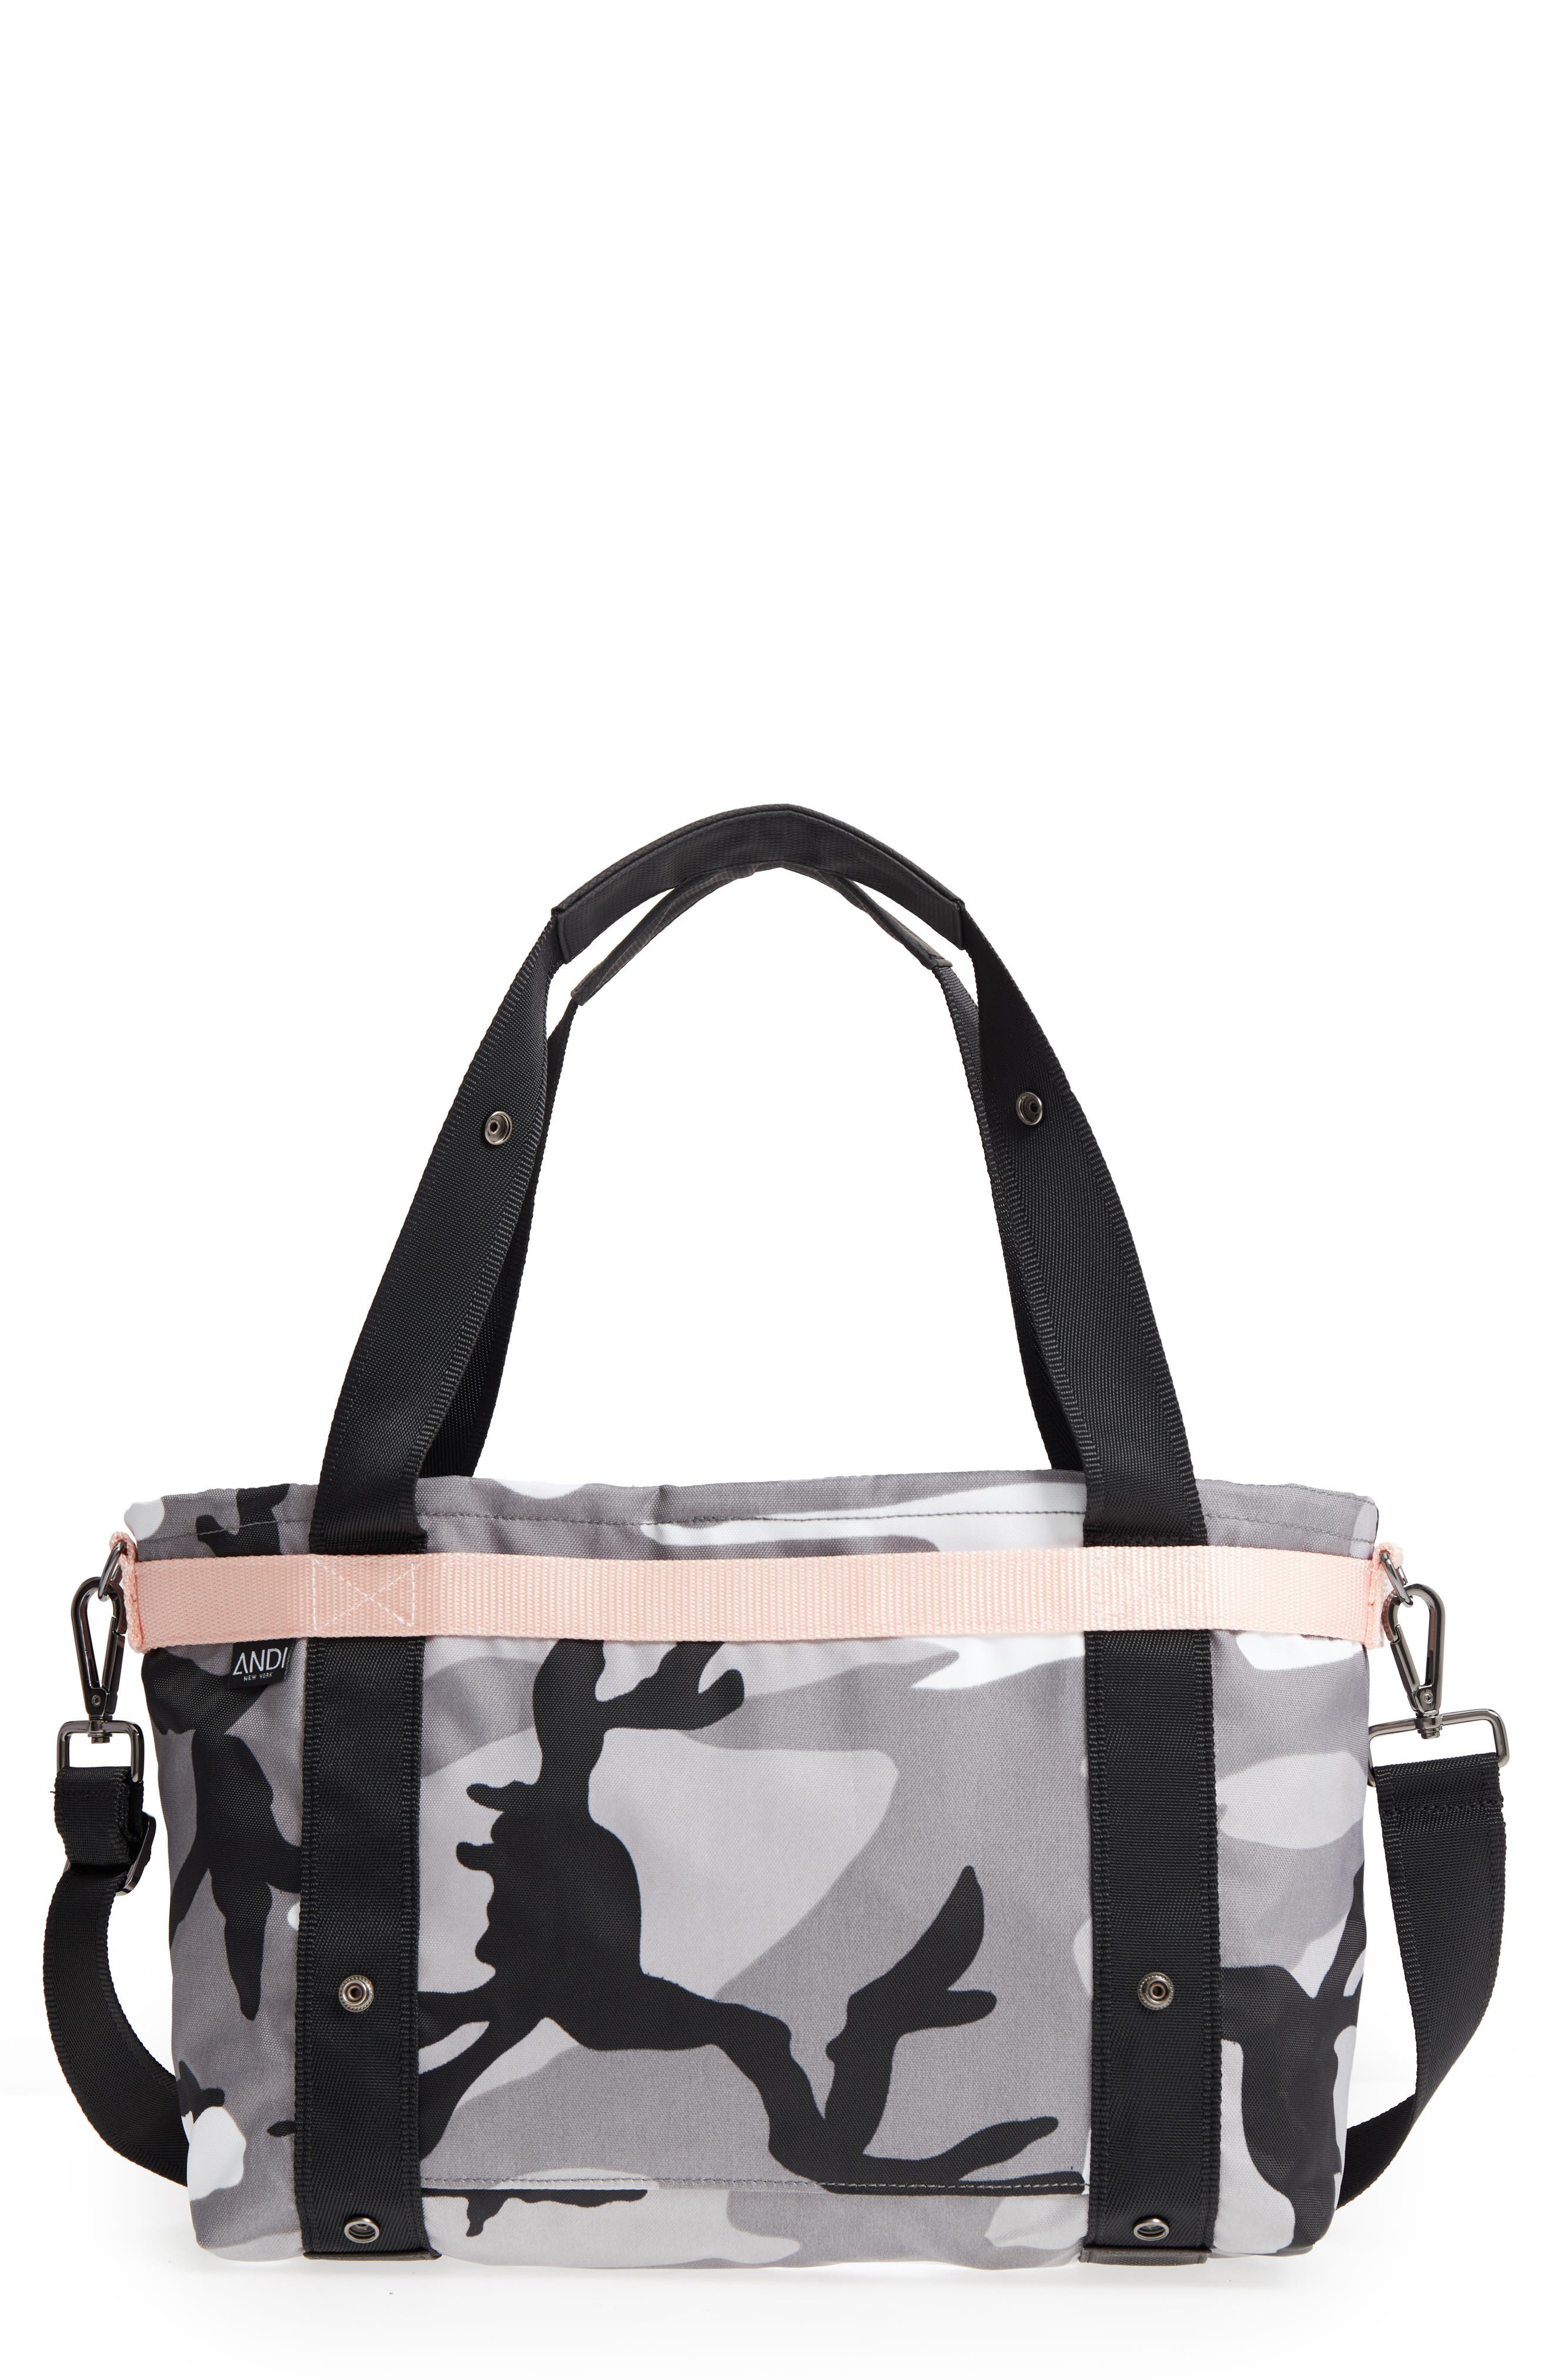 The ANDI Small Convertible Tote,                         Main,                         color, BLACK/ WHITE/ GRAY/ PINK